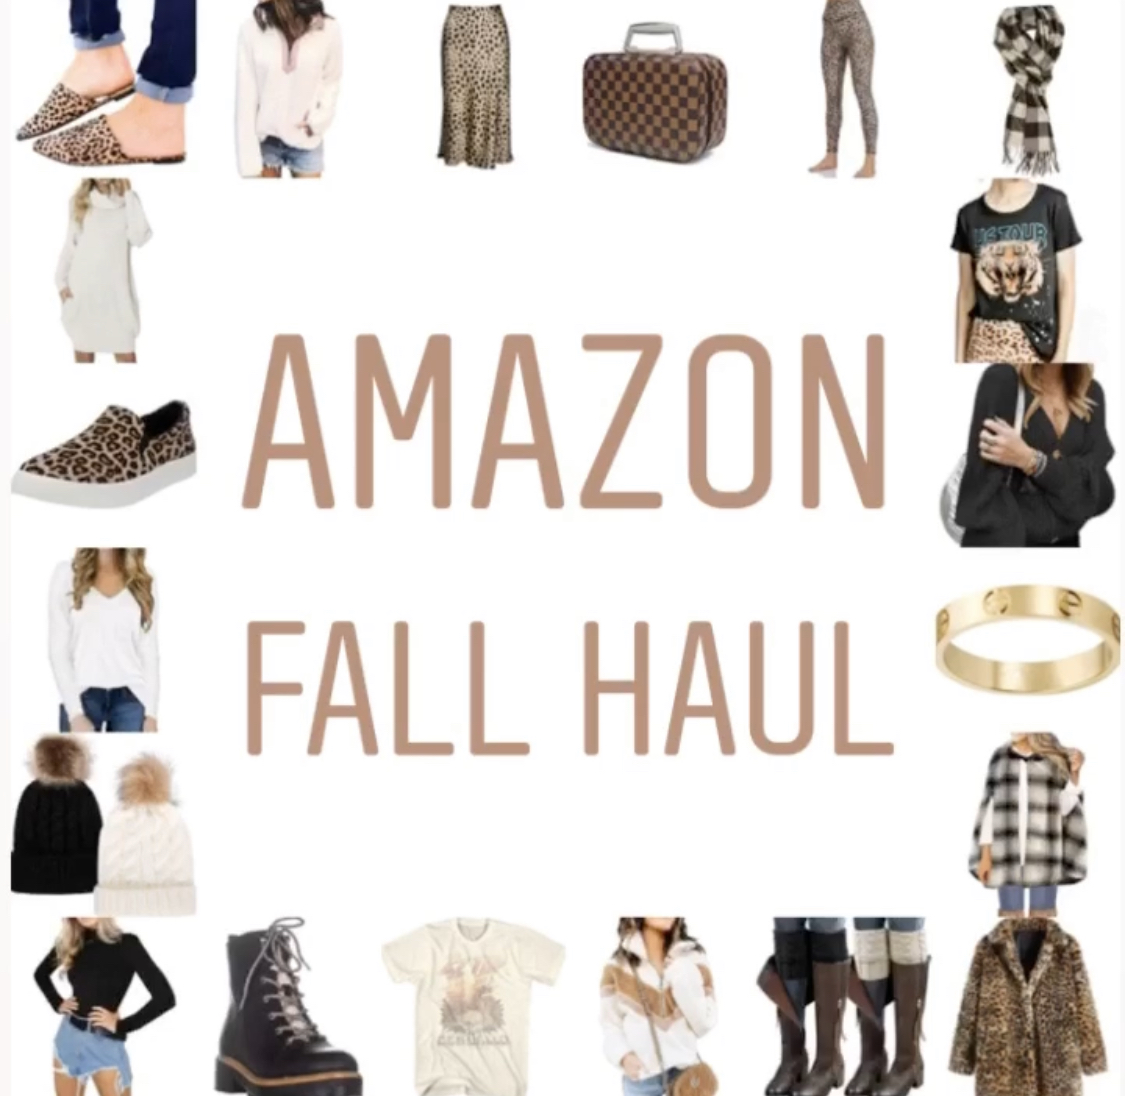 Amazon Fall Haul